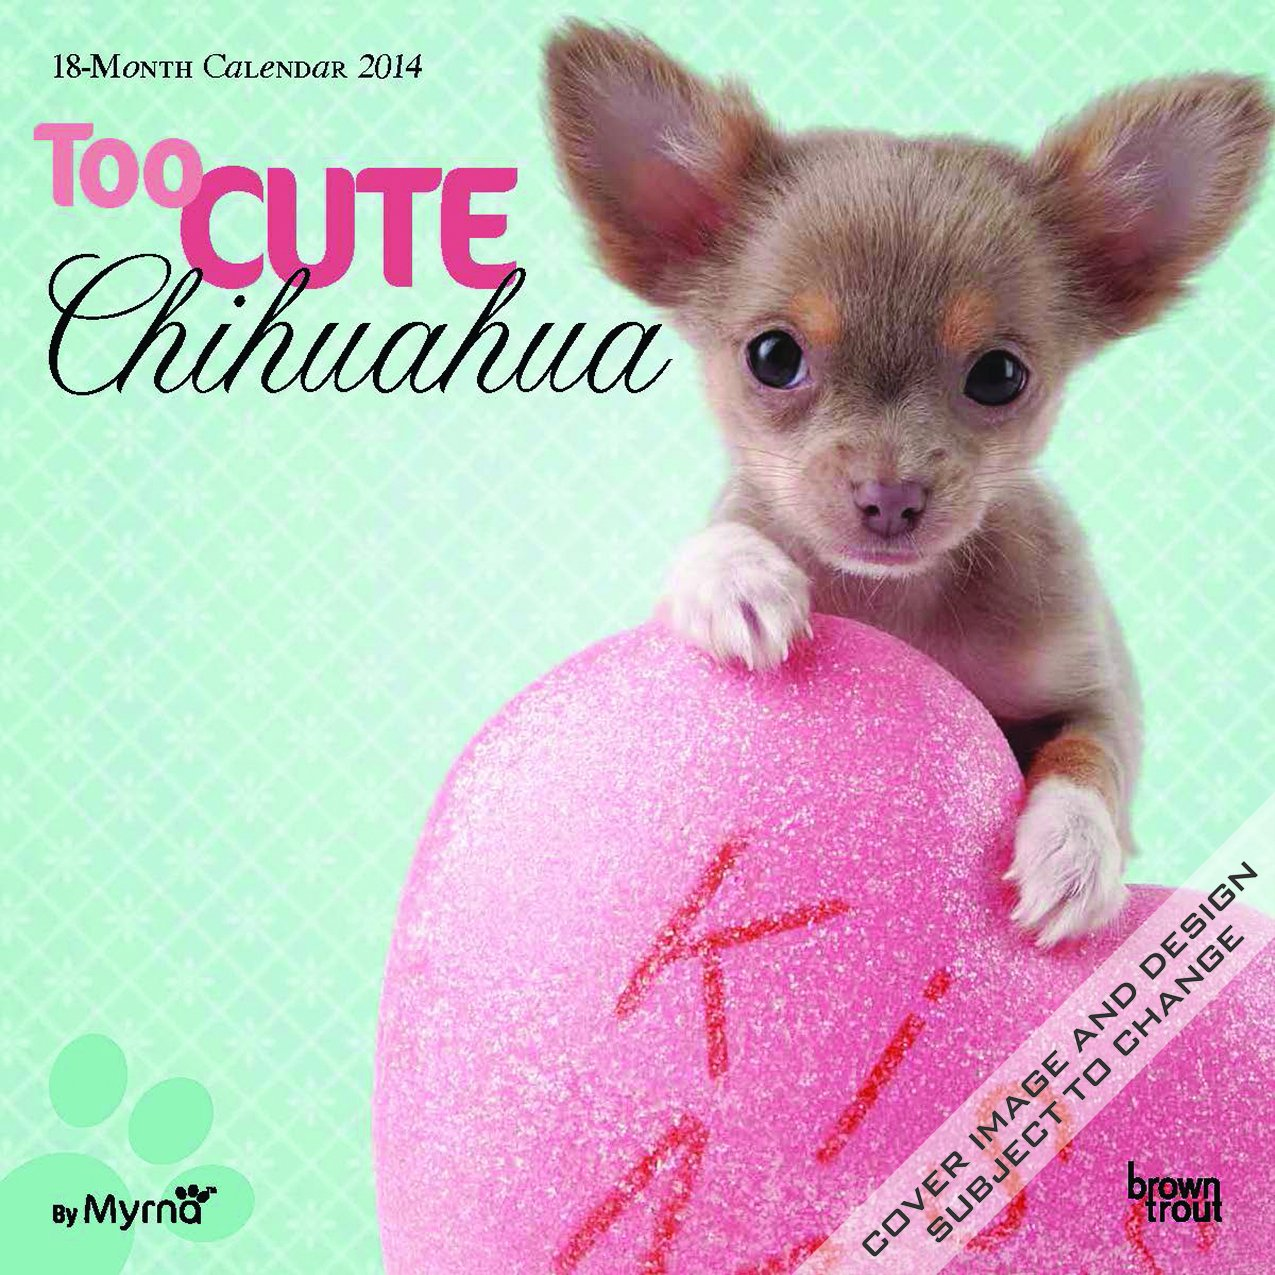 By Myrna: Too Cute Chihuahua - 2014 Calendar